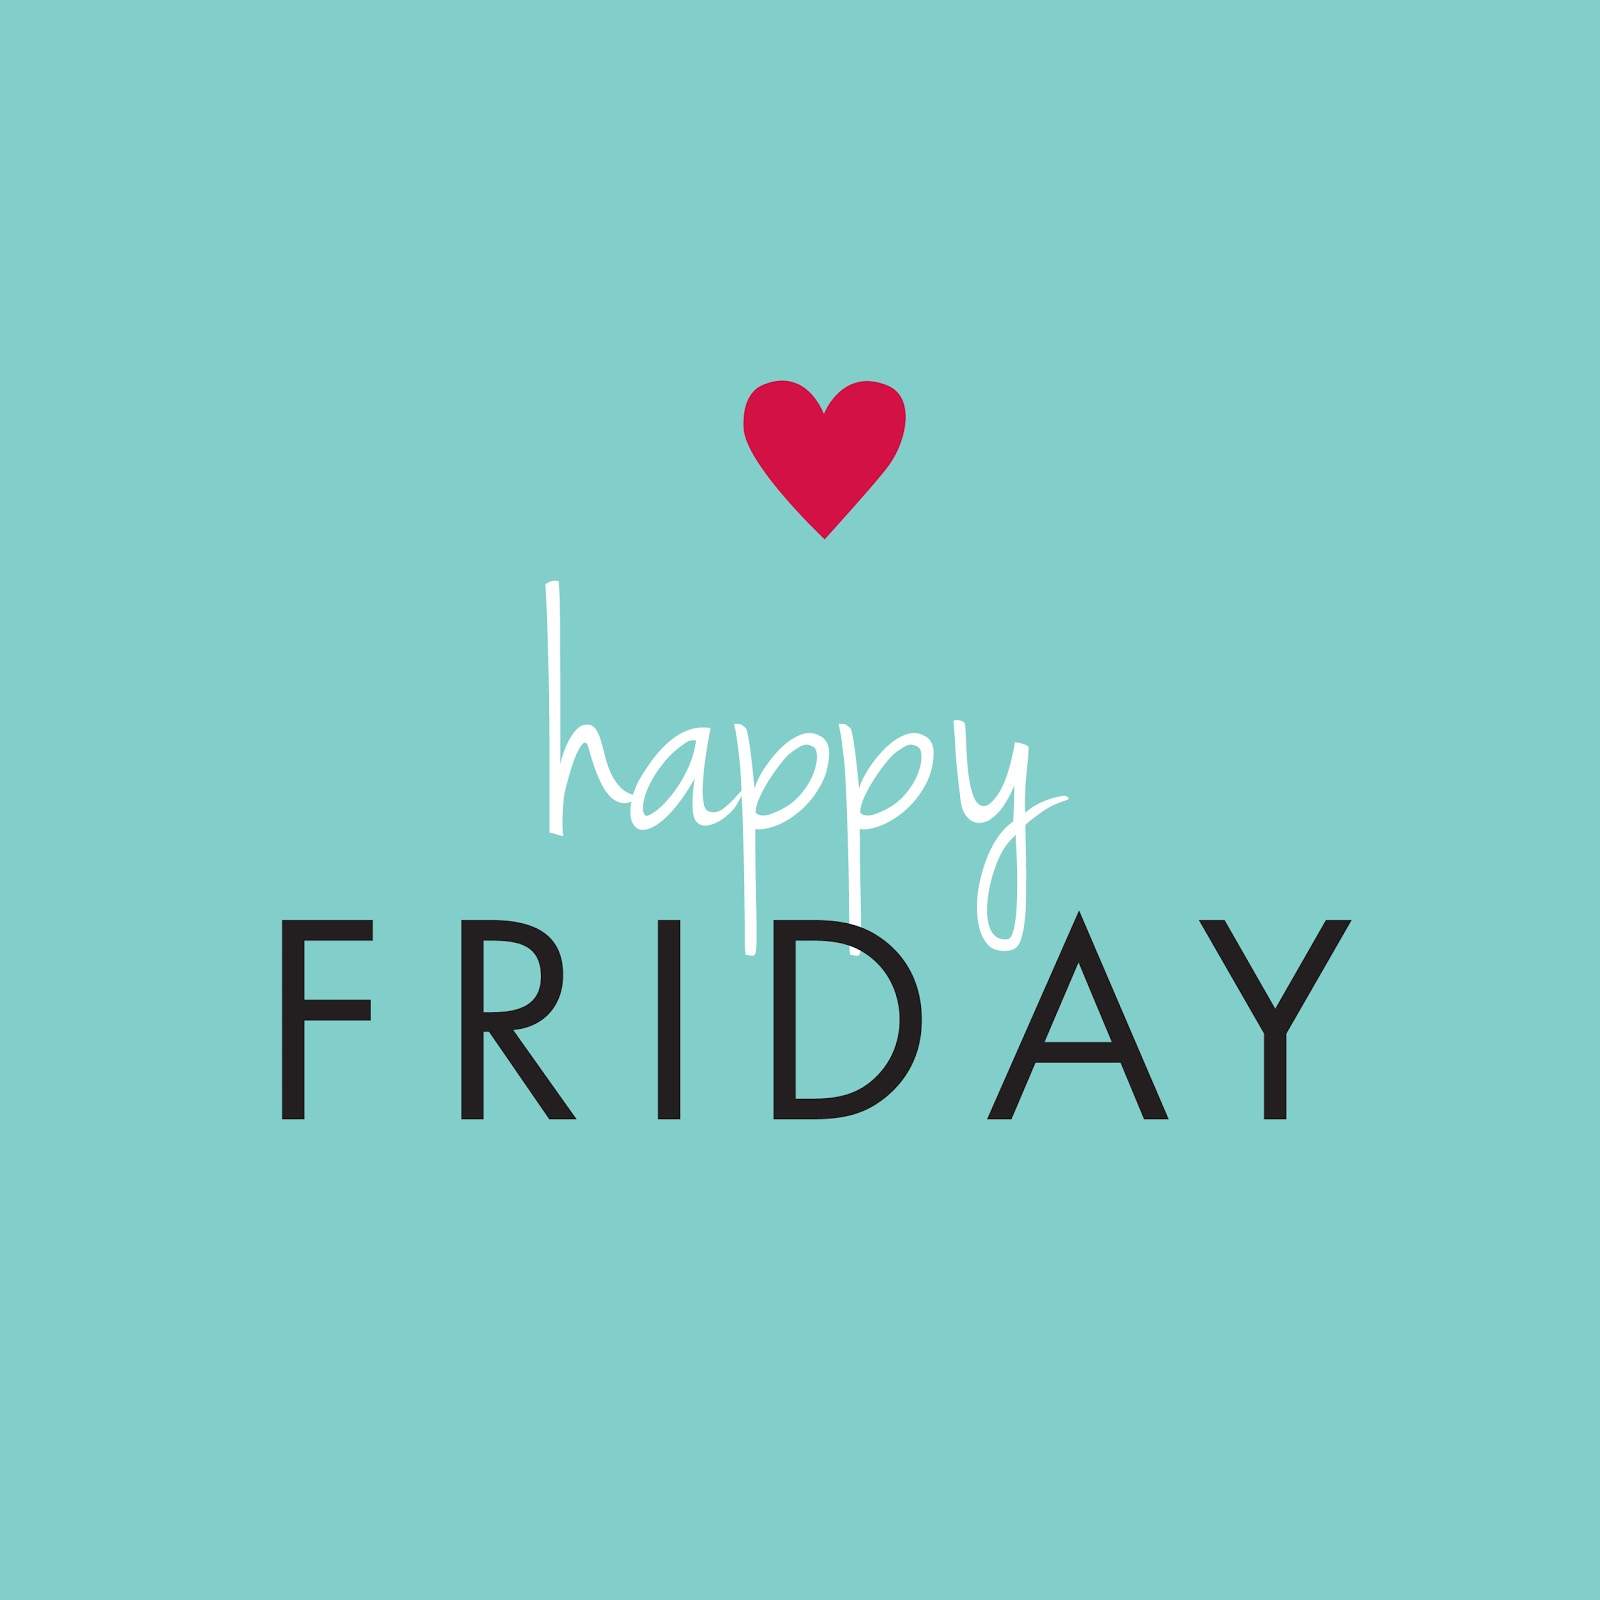 Happy Friday Wallpapers & pix